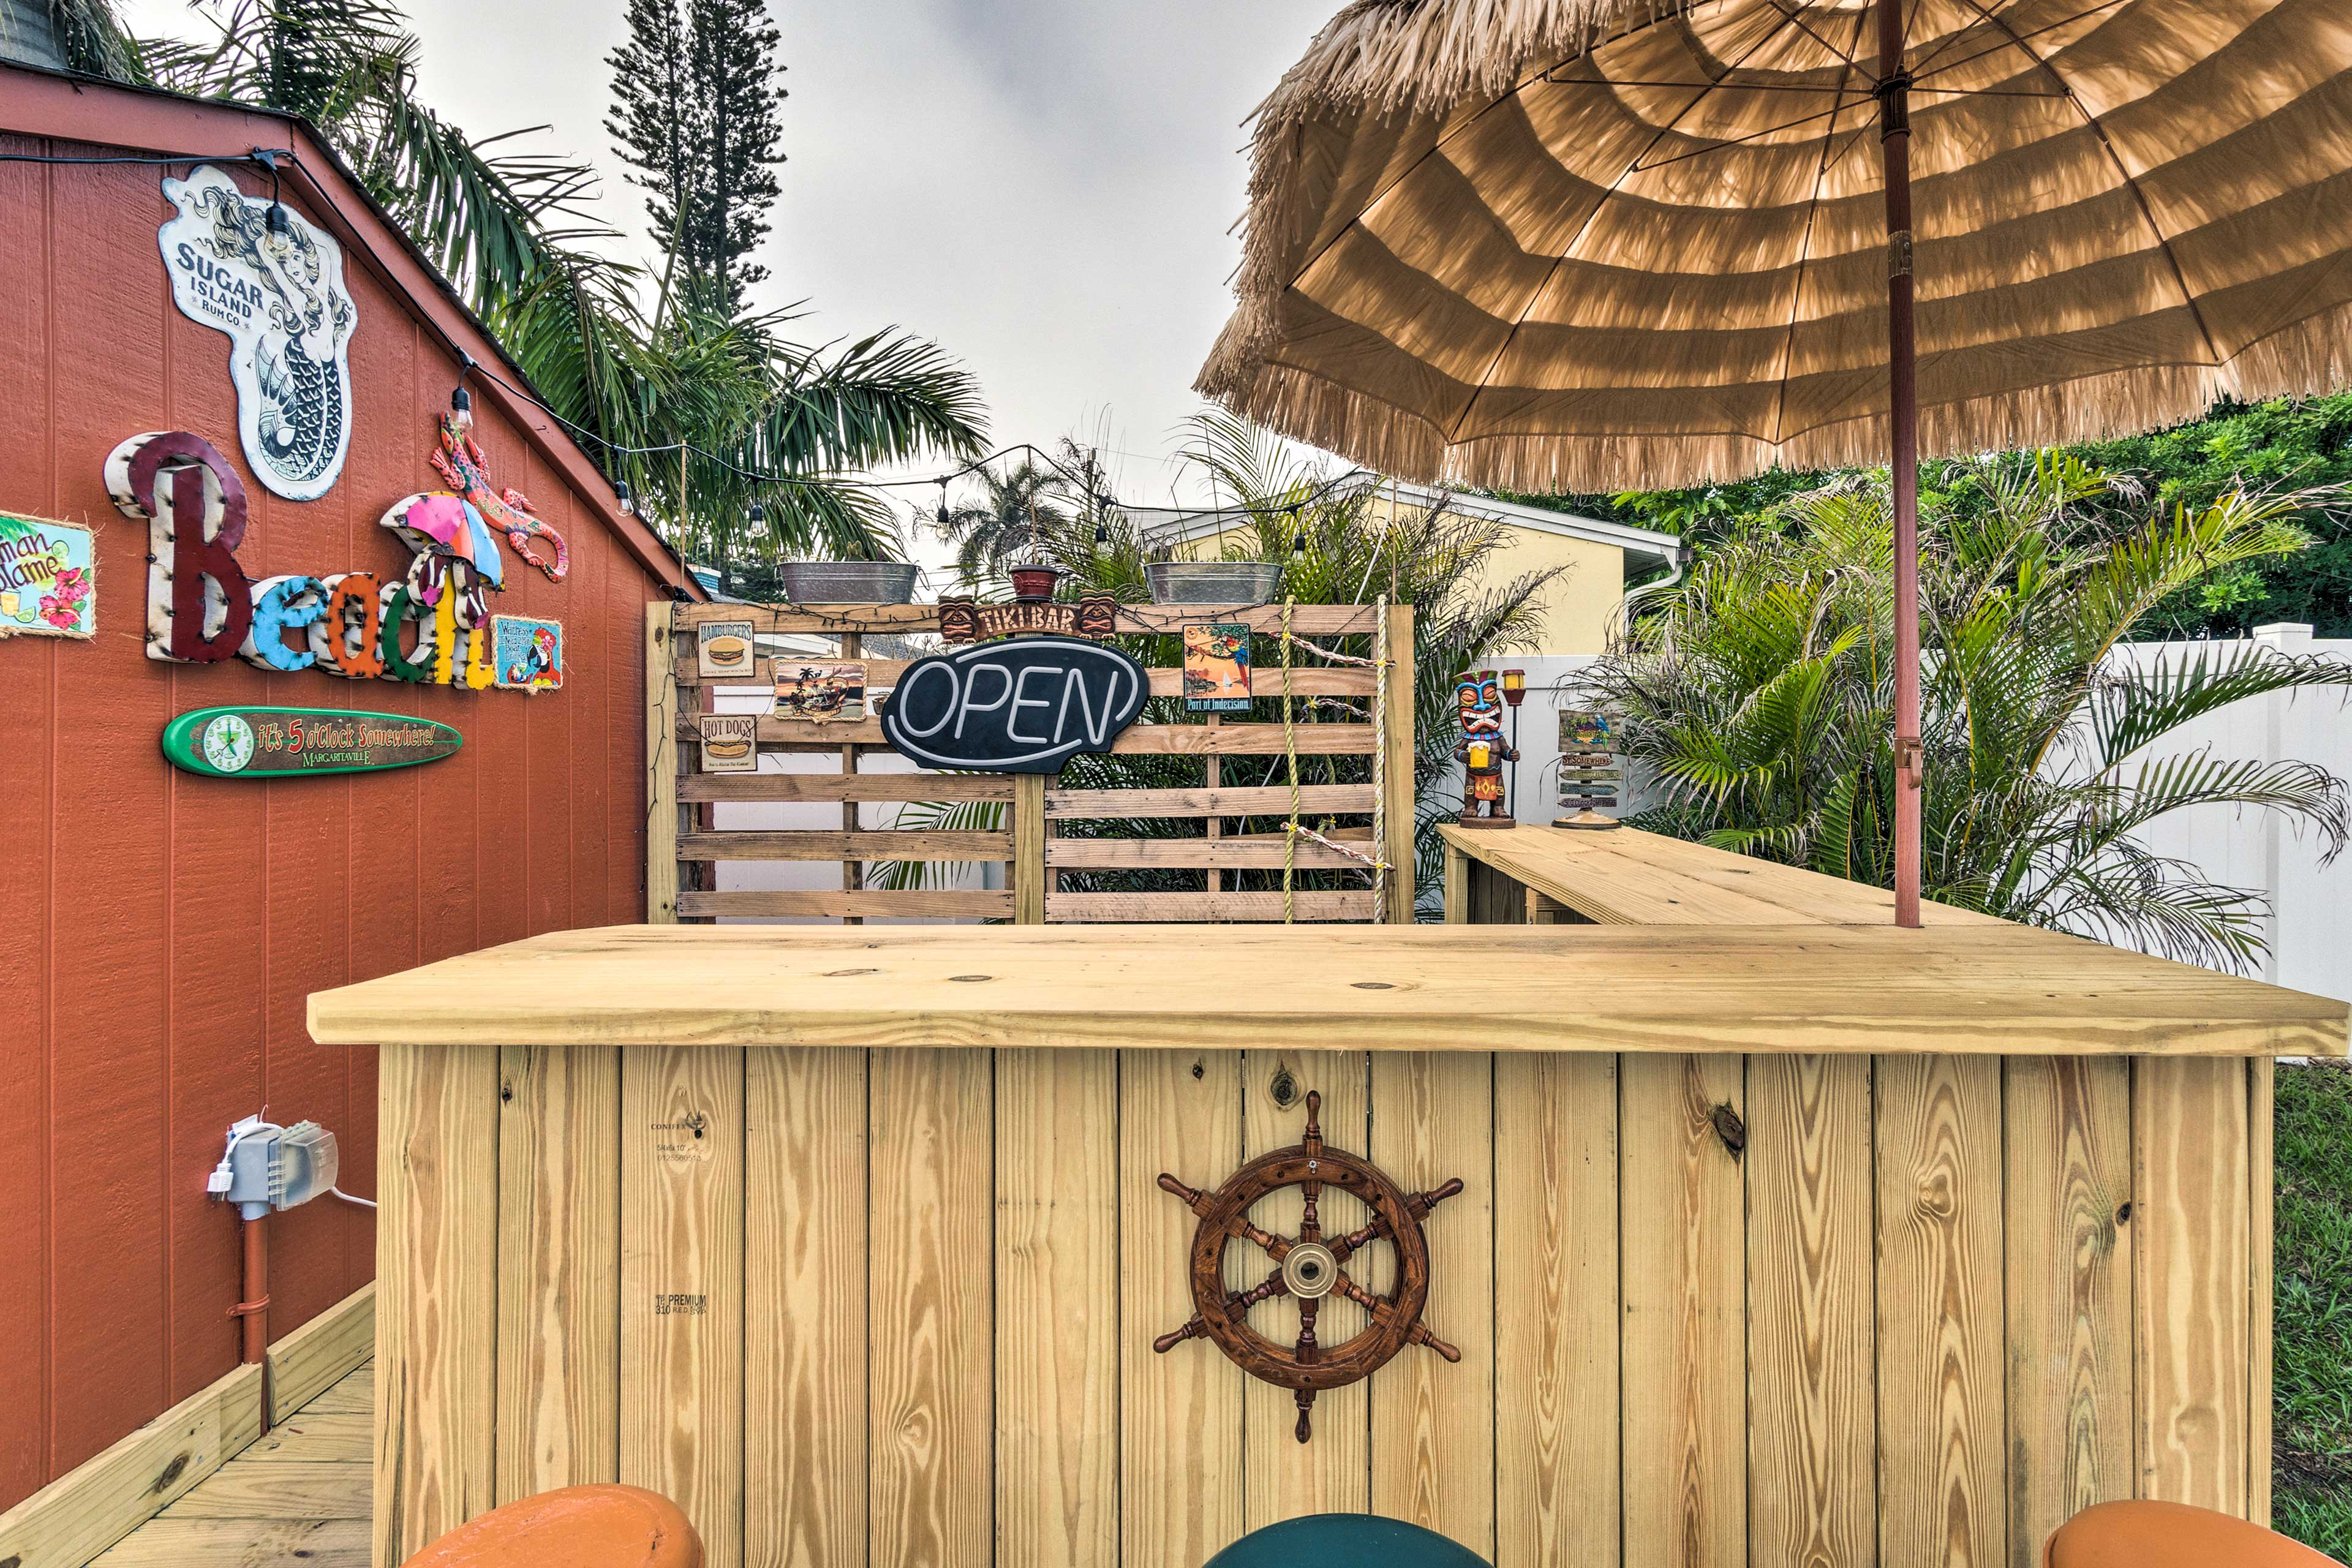 Serve up drinks from this awesome Tiki bar, day or night!